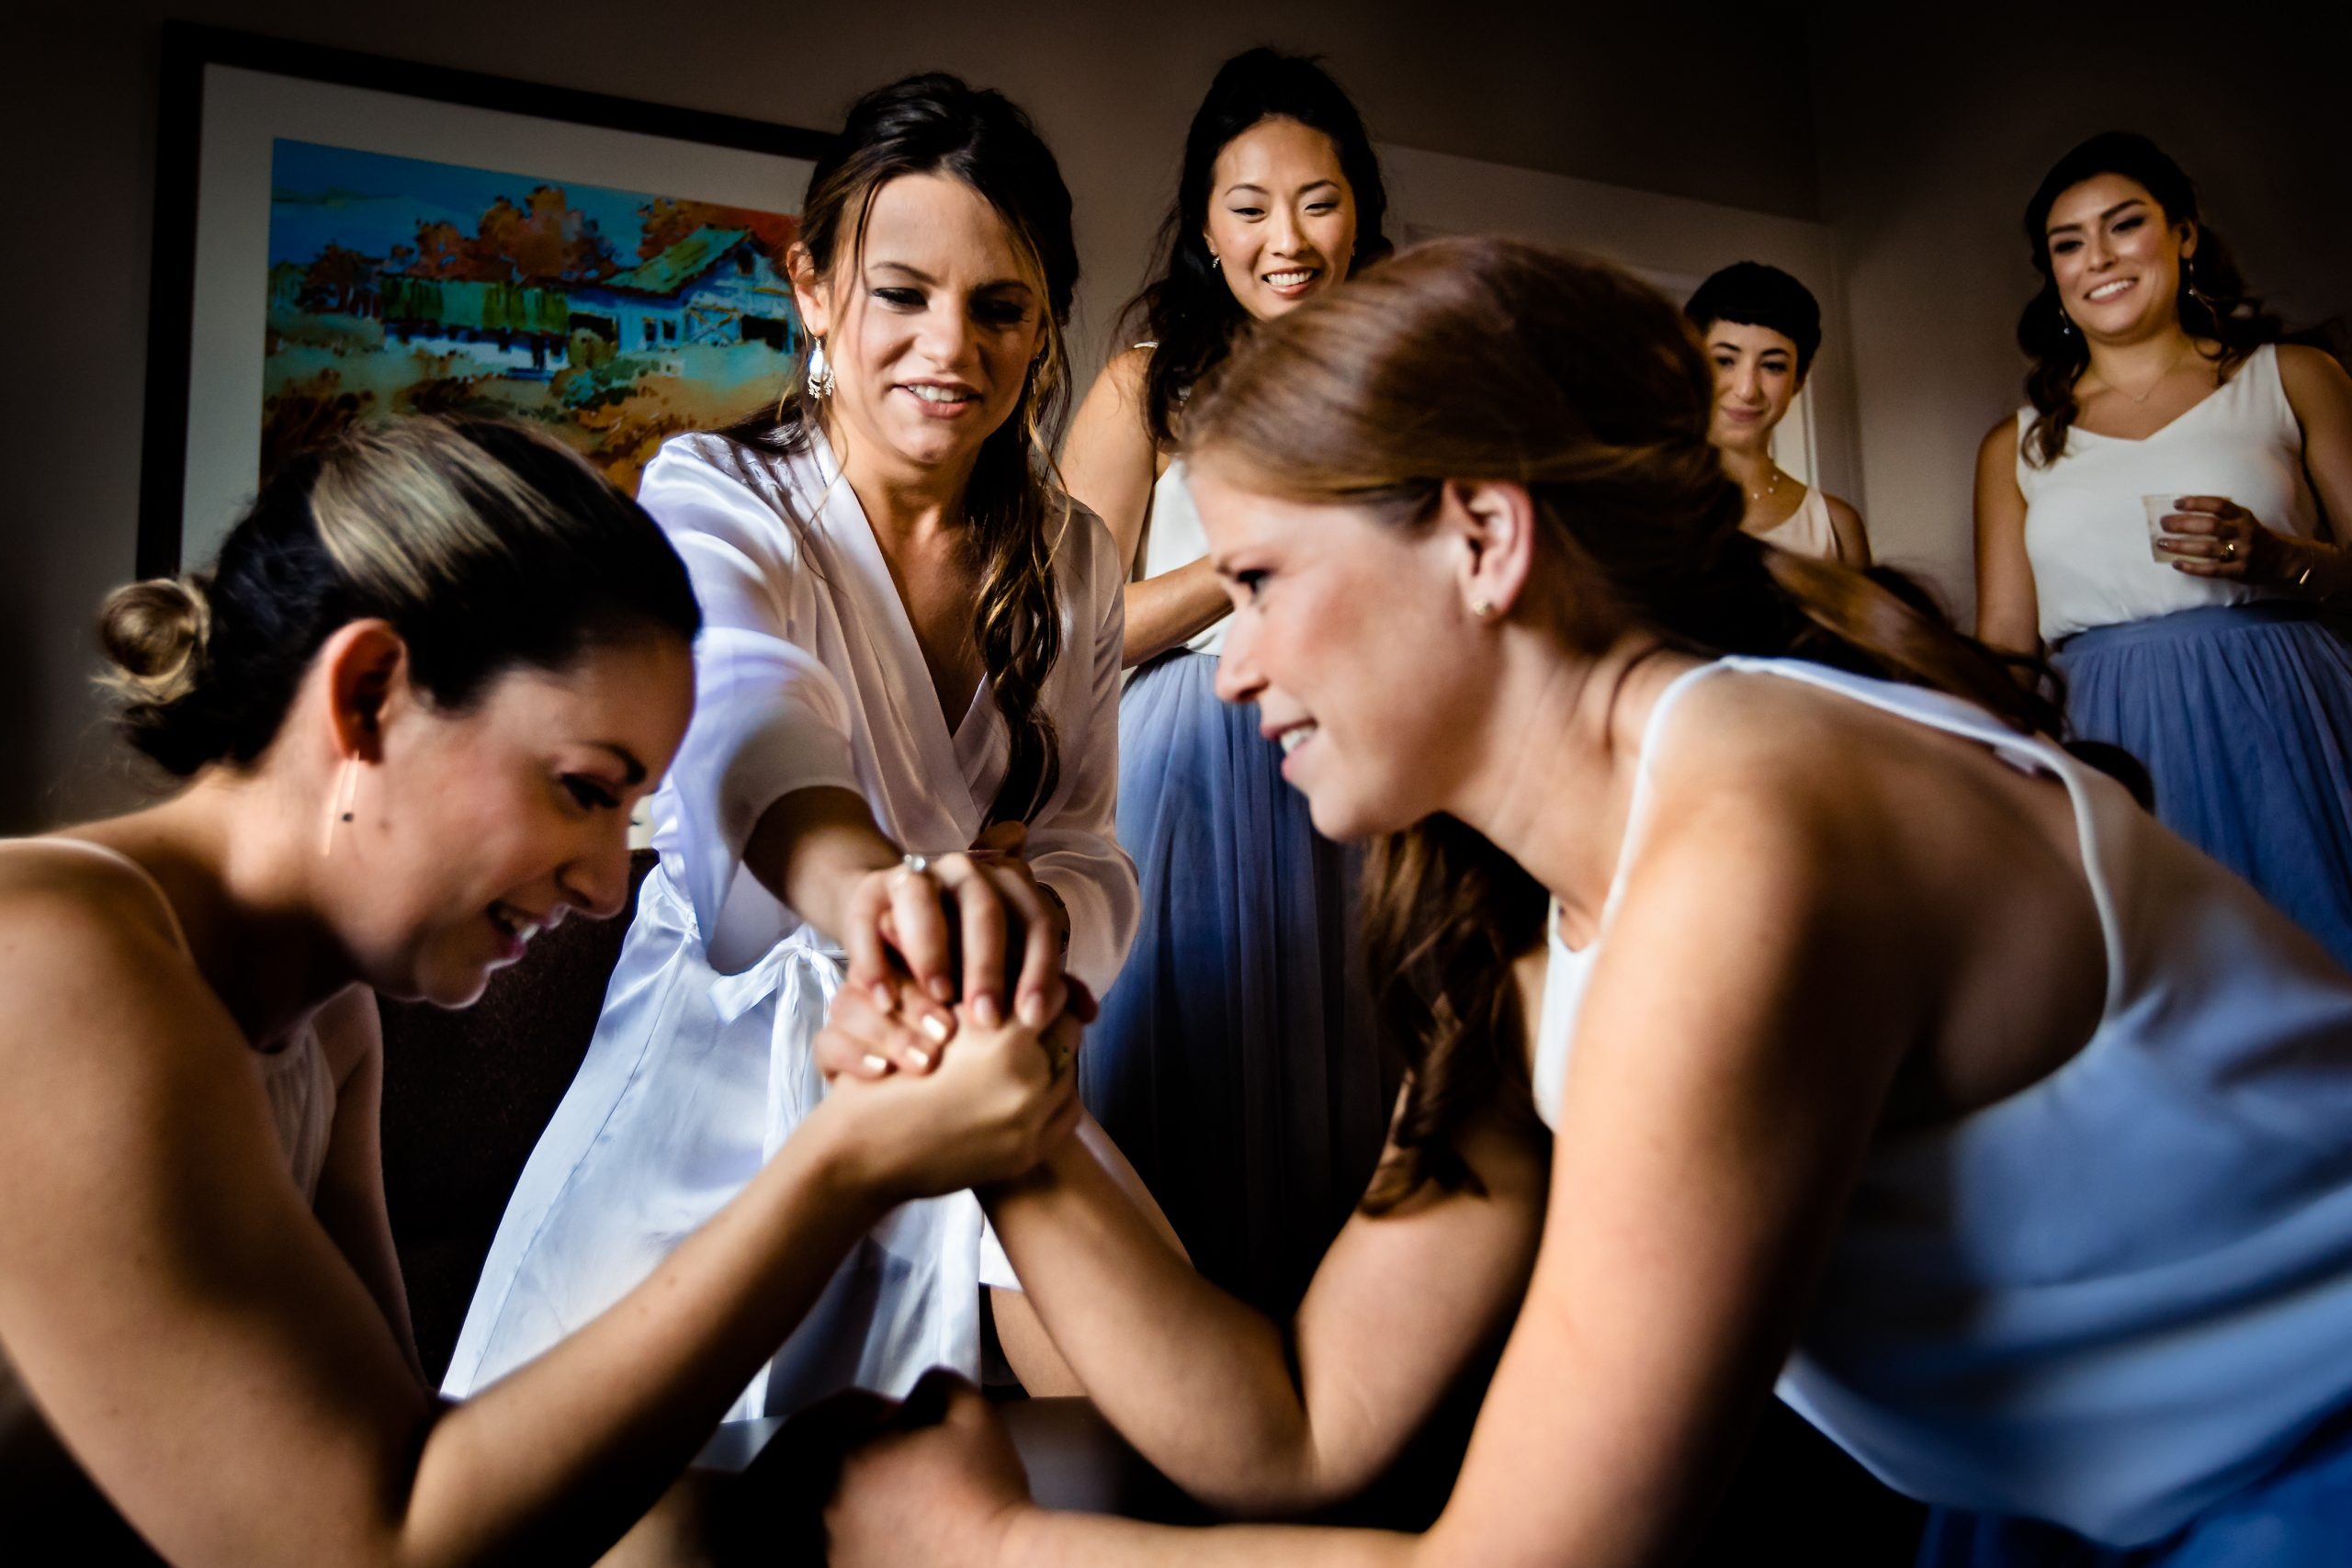 Bride officiates arm wrestling between bridesmaids